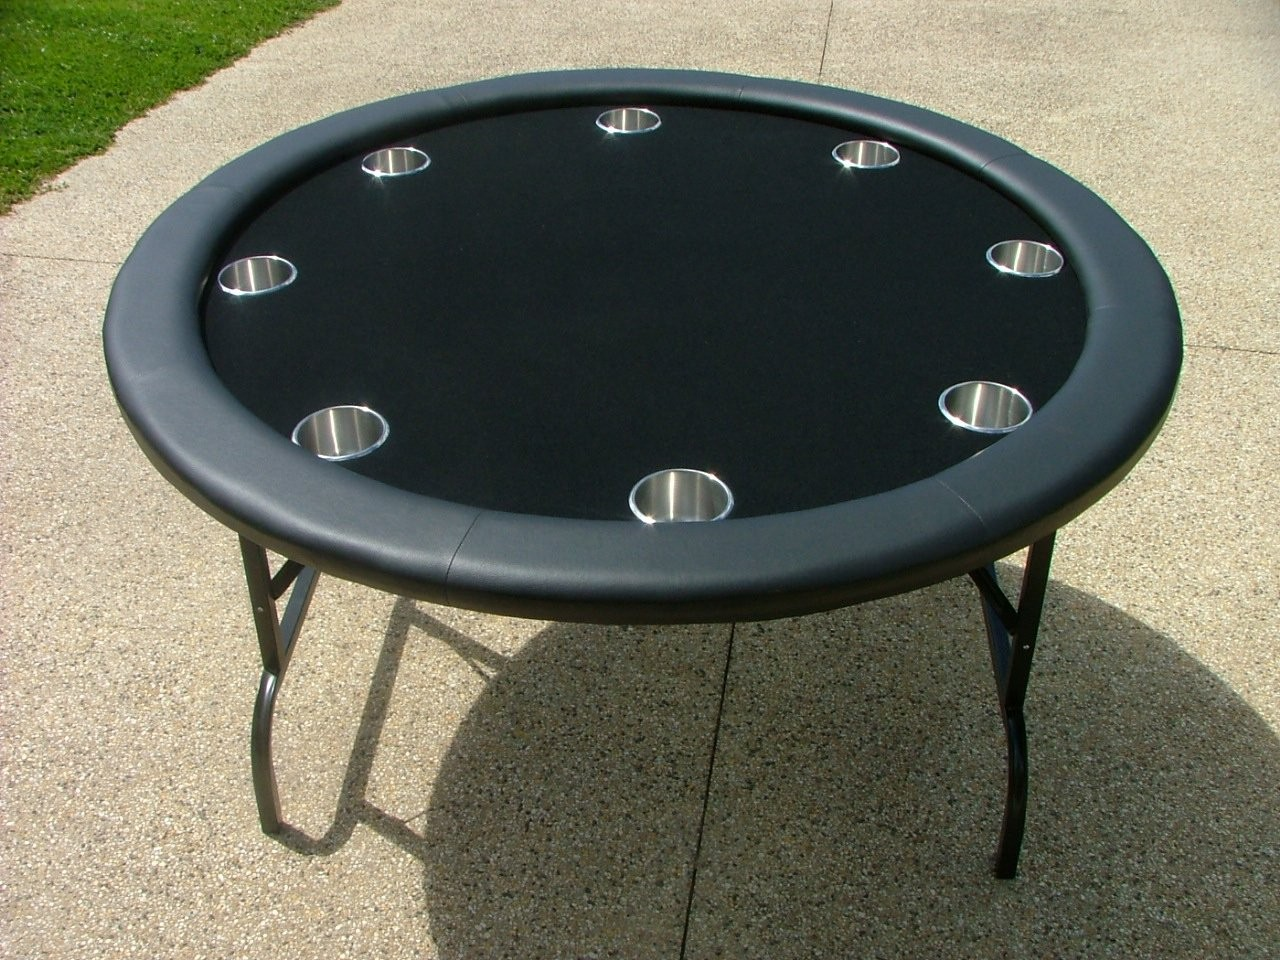 52 round black poker table w stainless steel cups for 52 table view